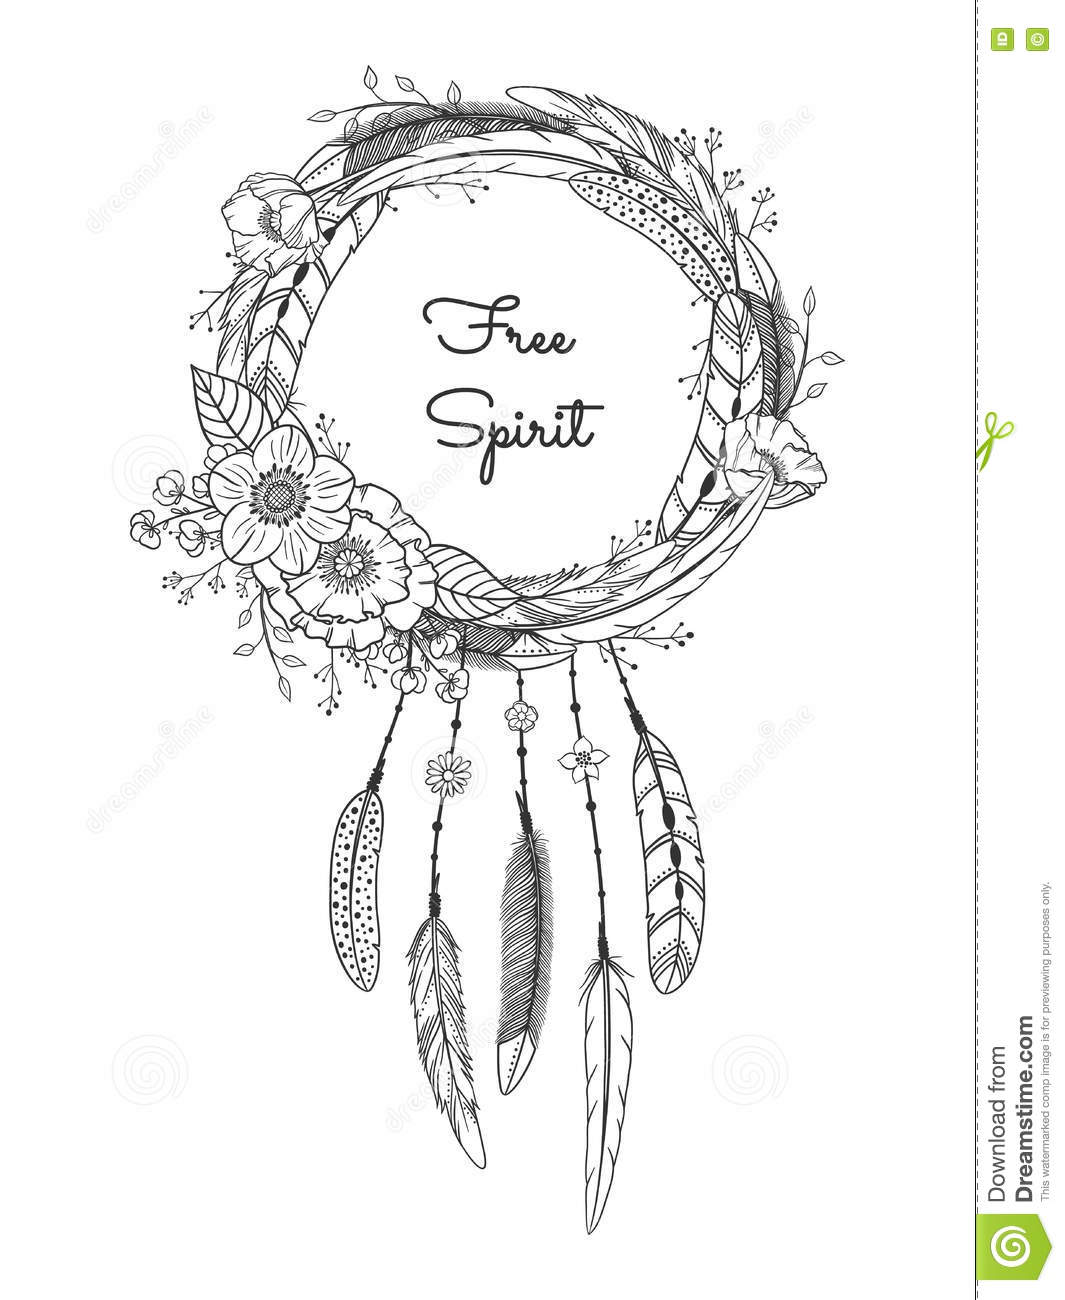 image regarding Legend of the Dreamcatcher Printable called Dreamcatcher With Feathers And Bouquets. Inventory Vector